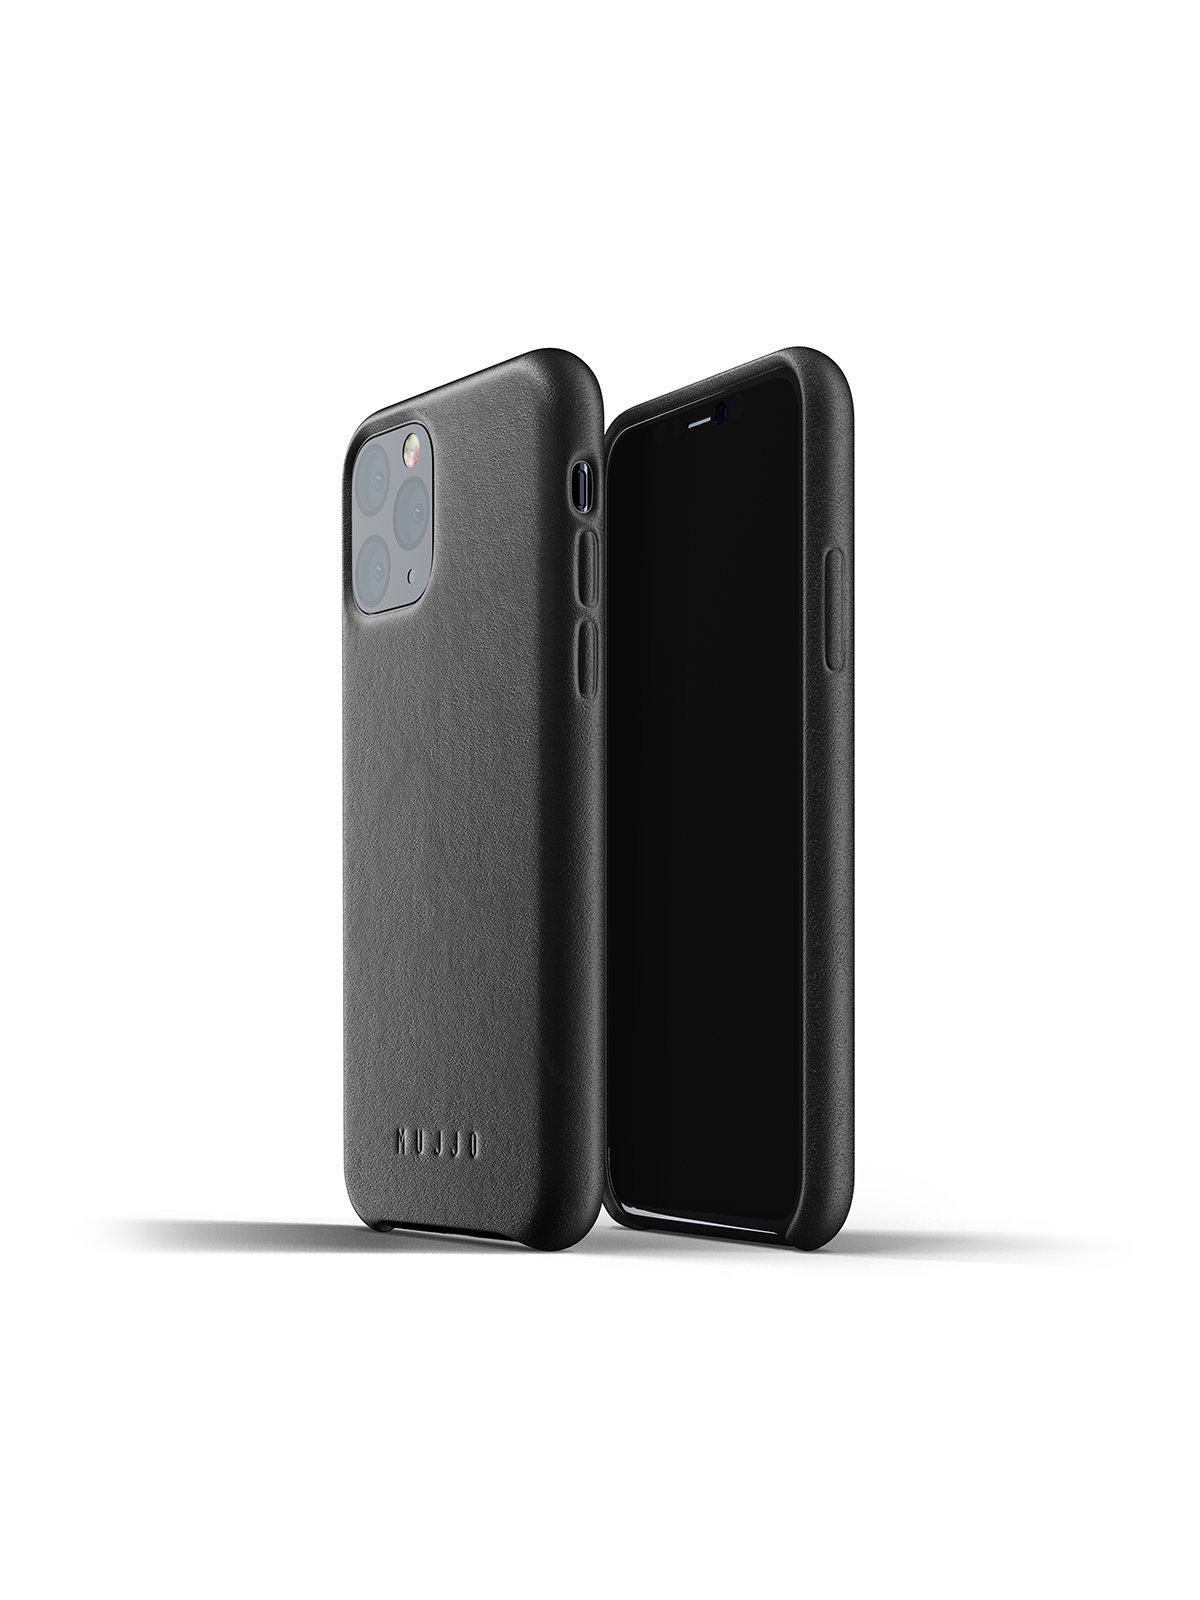 Mujjo Full Leather Case for iPhone 11 Pro Black - MORE by Morello Indonesia